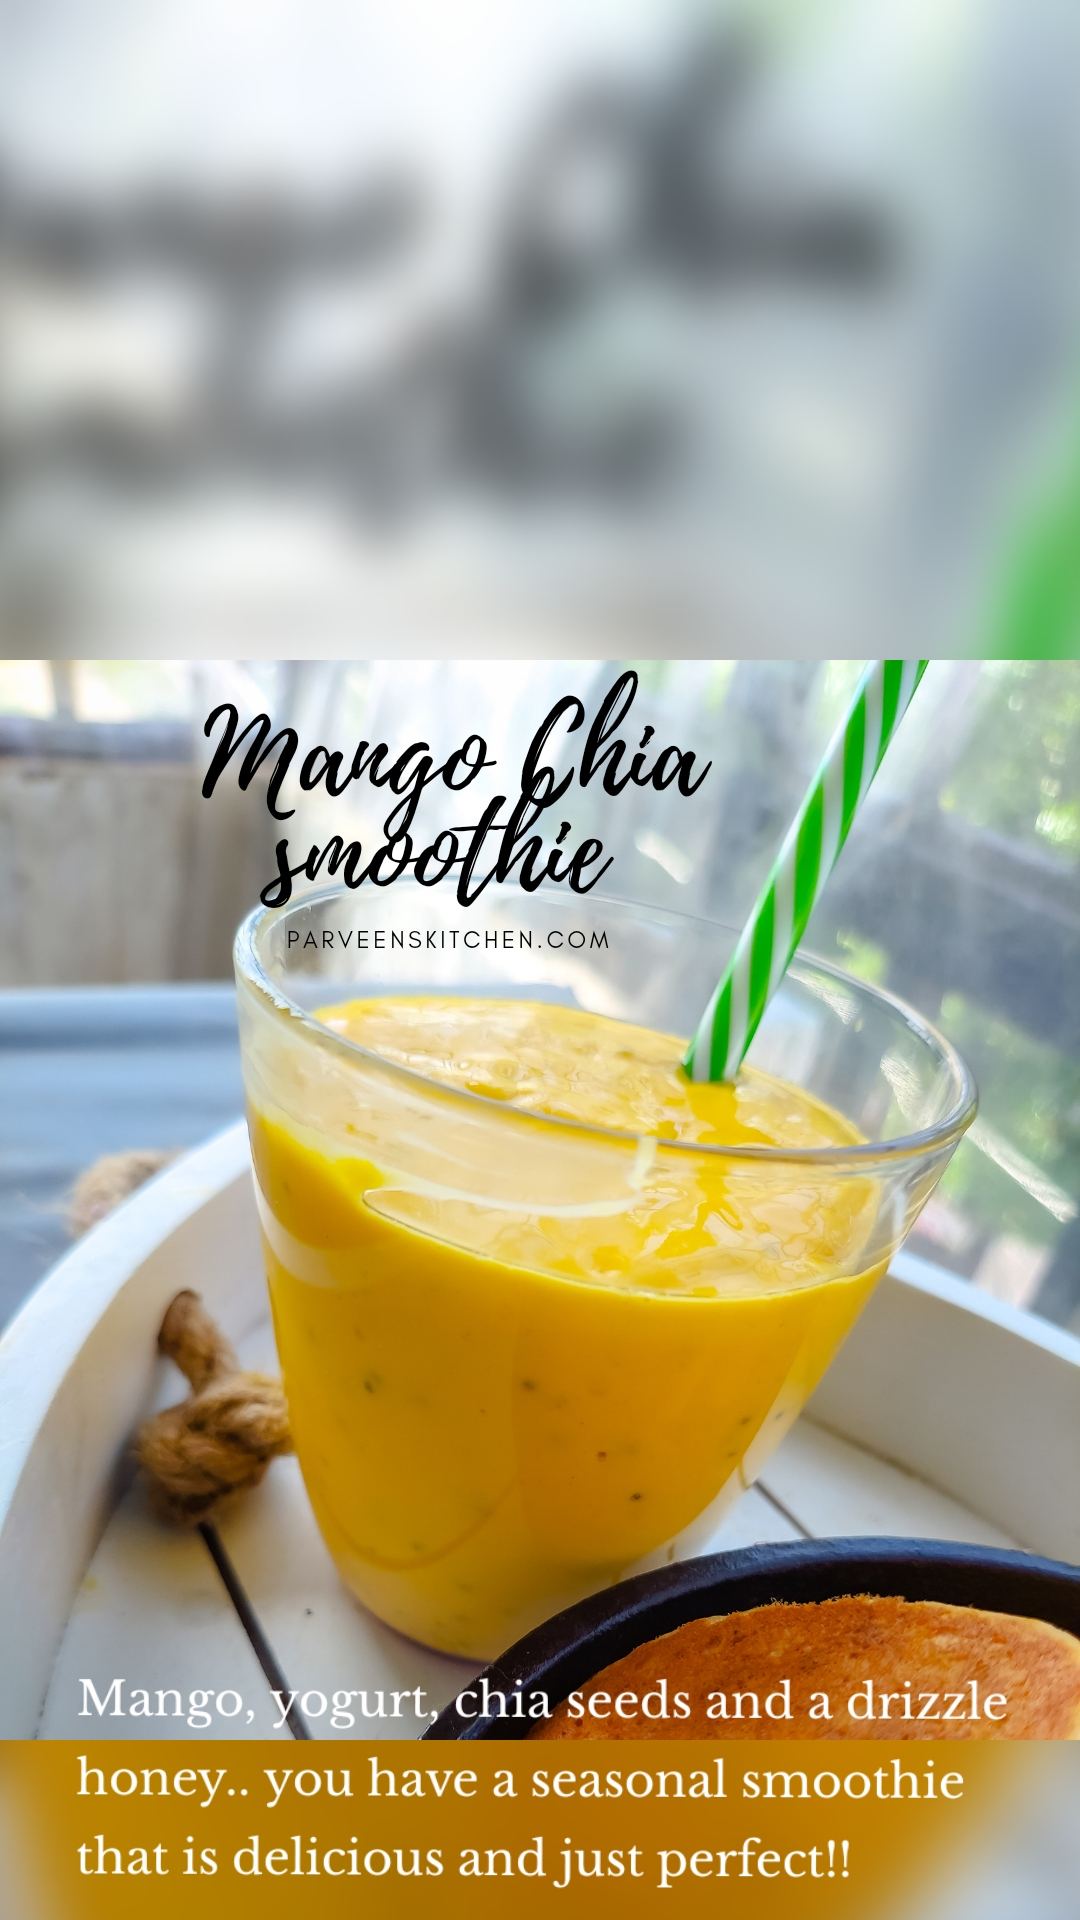 Mango, yogurt, chia seeds and a drizzle honey.. you have a seasonal smoothie that is delicious and just perfect!!